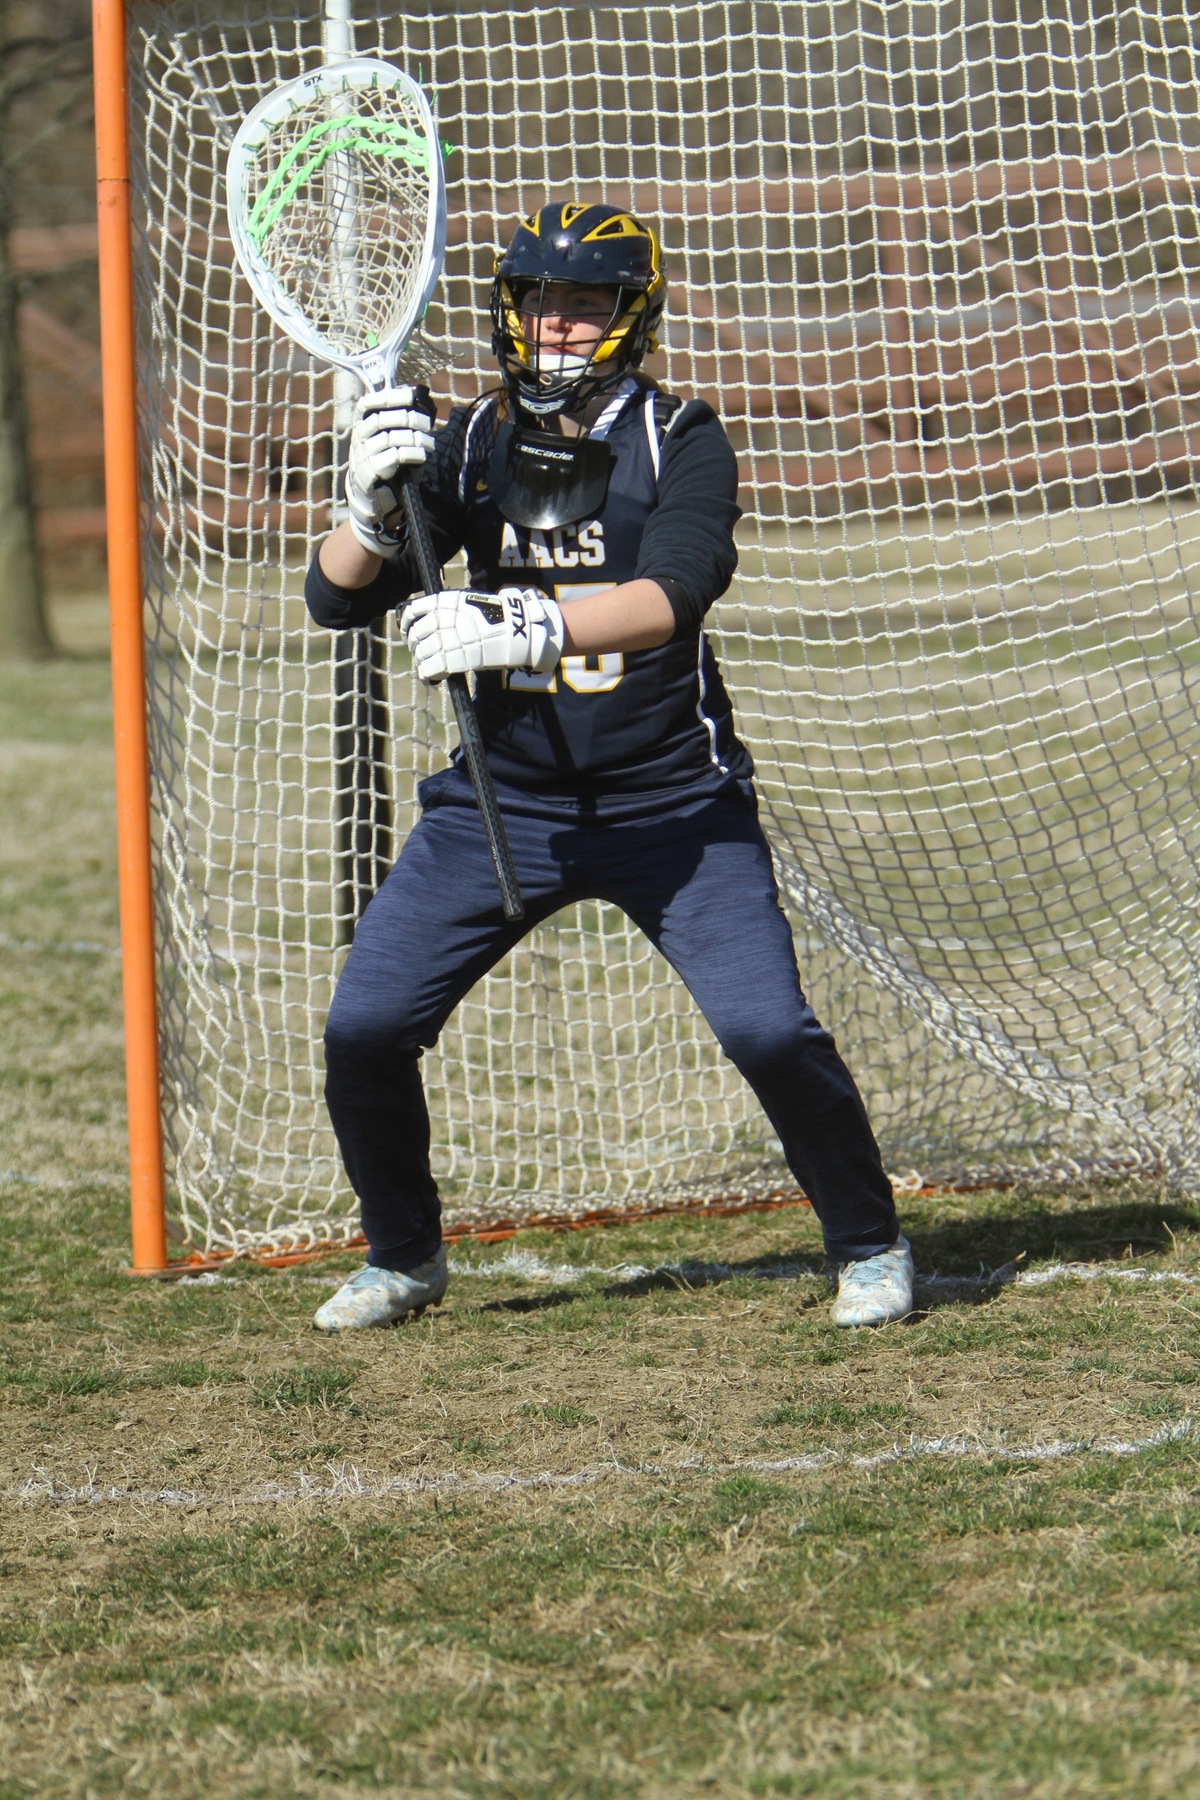 Girls Lacrosse Remains In 1st After Win Over Catholic